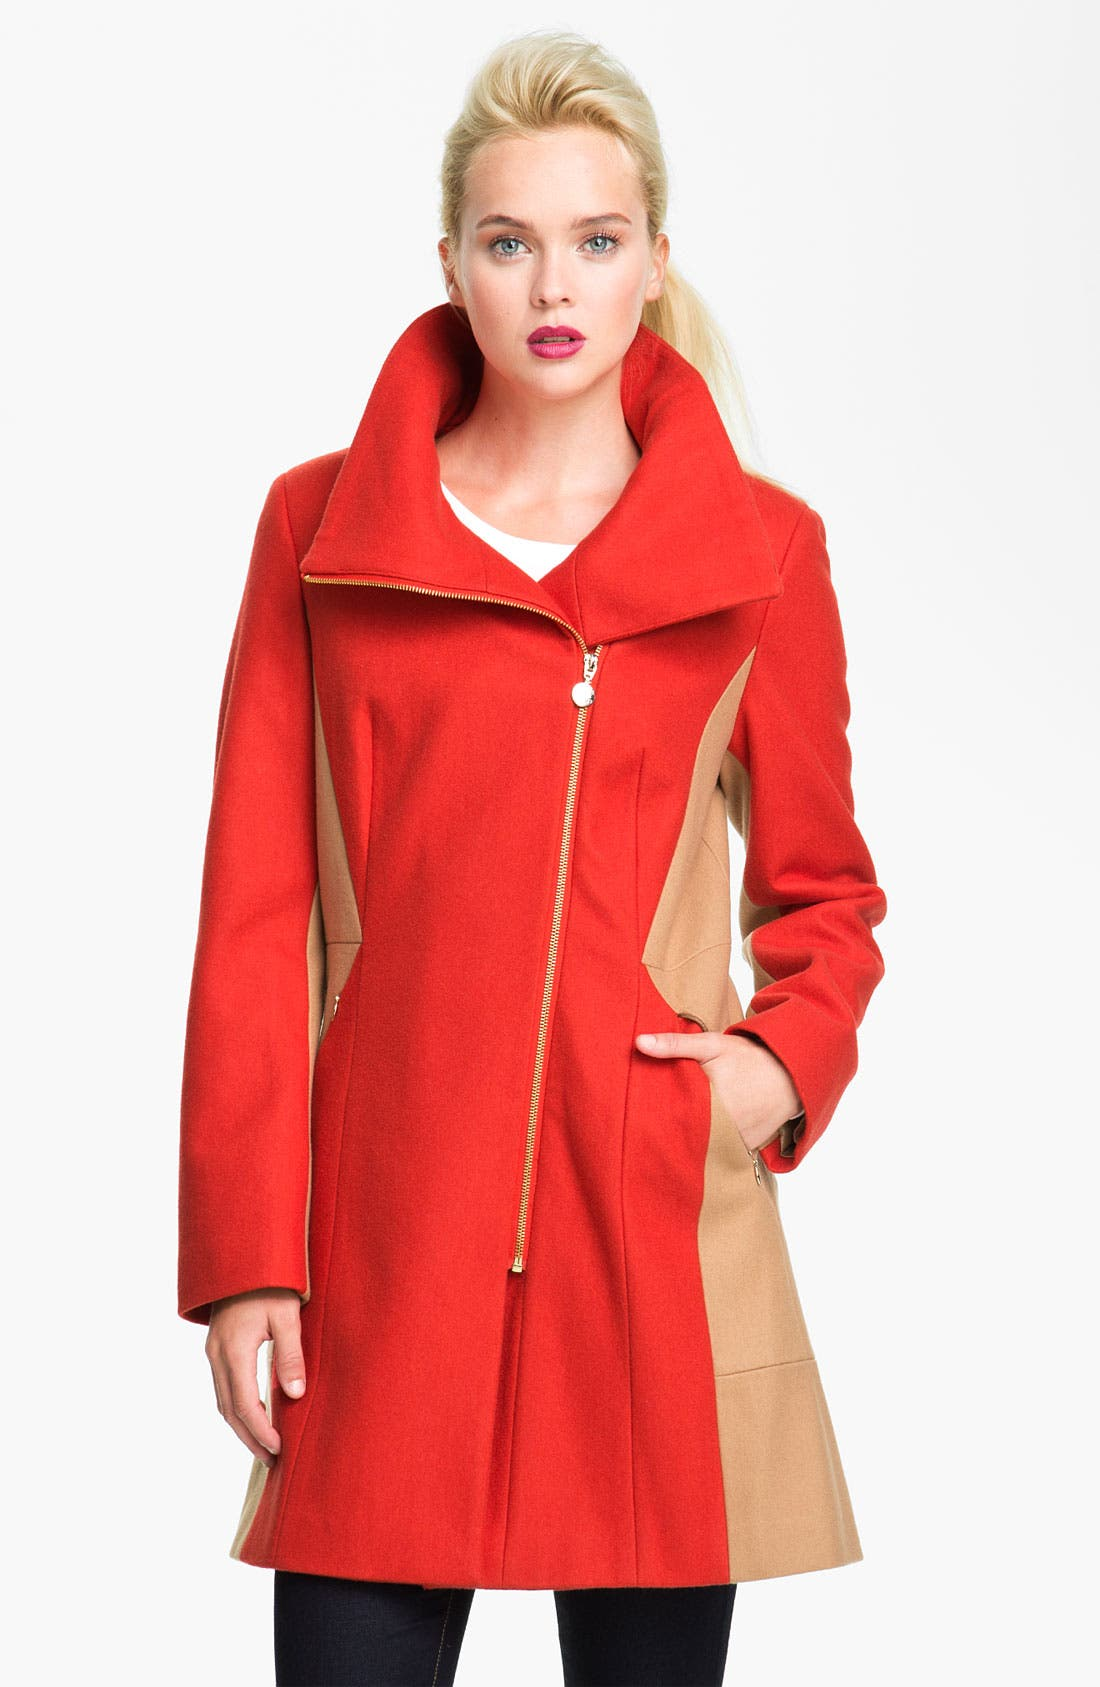 Alternate Image 1 Selected - Calvin Klein Two Tone Asymmetrical Walking Coat